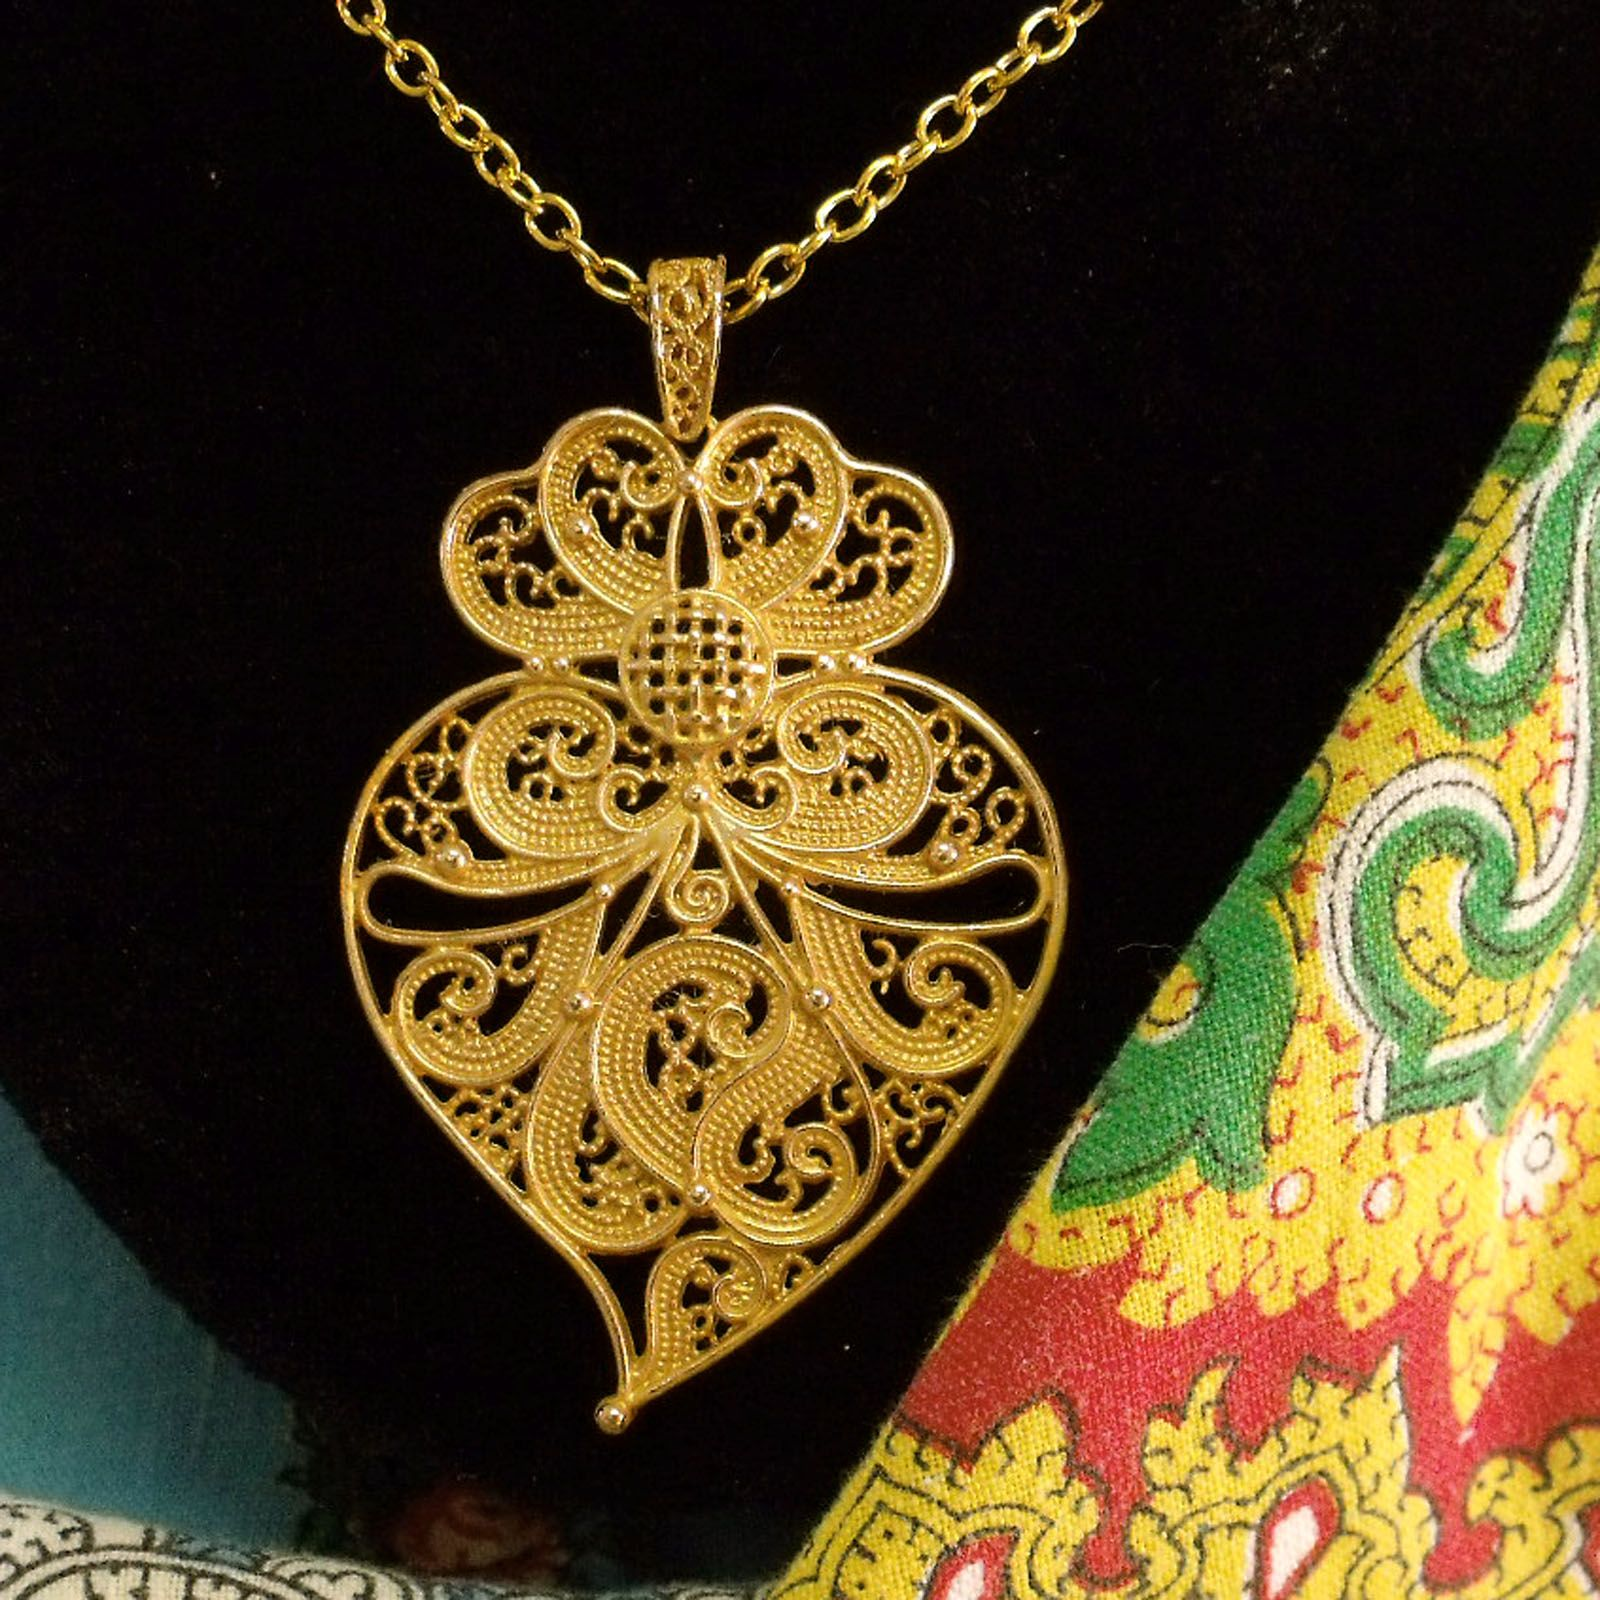 Portuguese folk big filigree Heart of Viana style pendant chain necklace. Inspired in the Portugal traditional filigree jewelry used by country women in the north of Portugal. $39.00...#madeinPortugal#portugaljewelry#vianaheart#portuguesefiligree#portugalfolkart#portuguesenecklace#coraçãodeviana#helenaaleixo